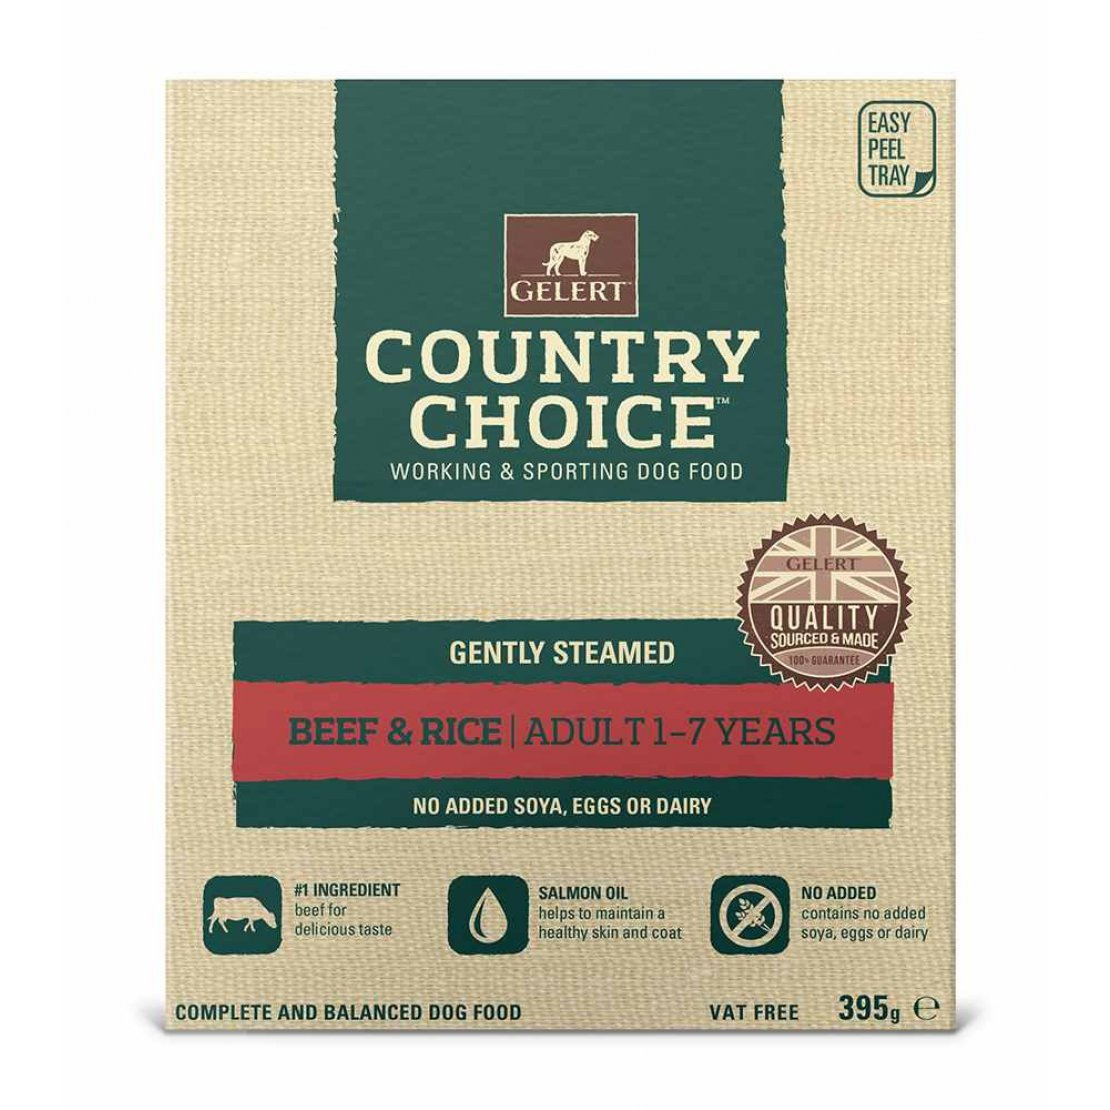 ONLY AVAILABLE FOR LOCAL DELIVERY. Gelert Country Choice Dog Food Tray. Beef & Rice. 10 Pack